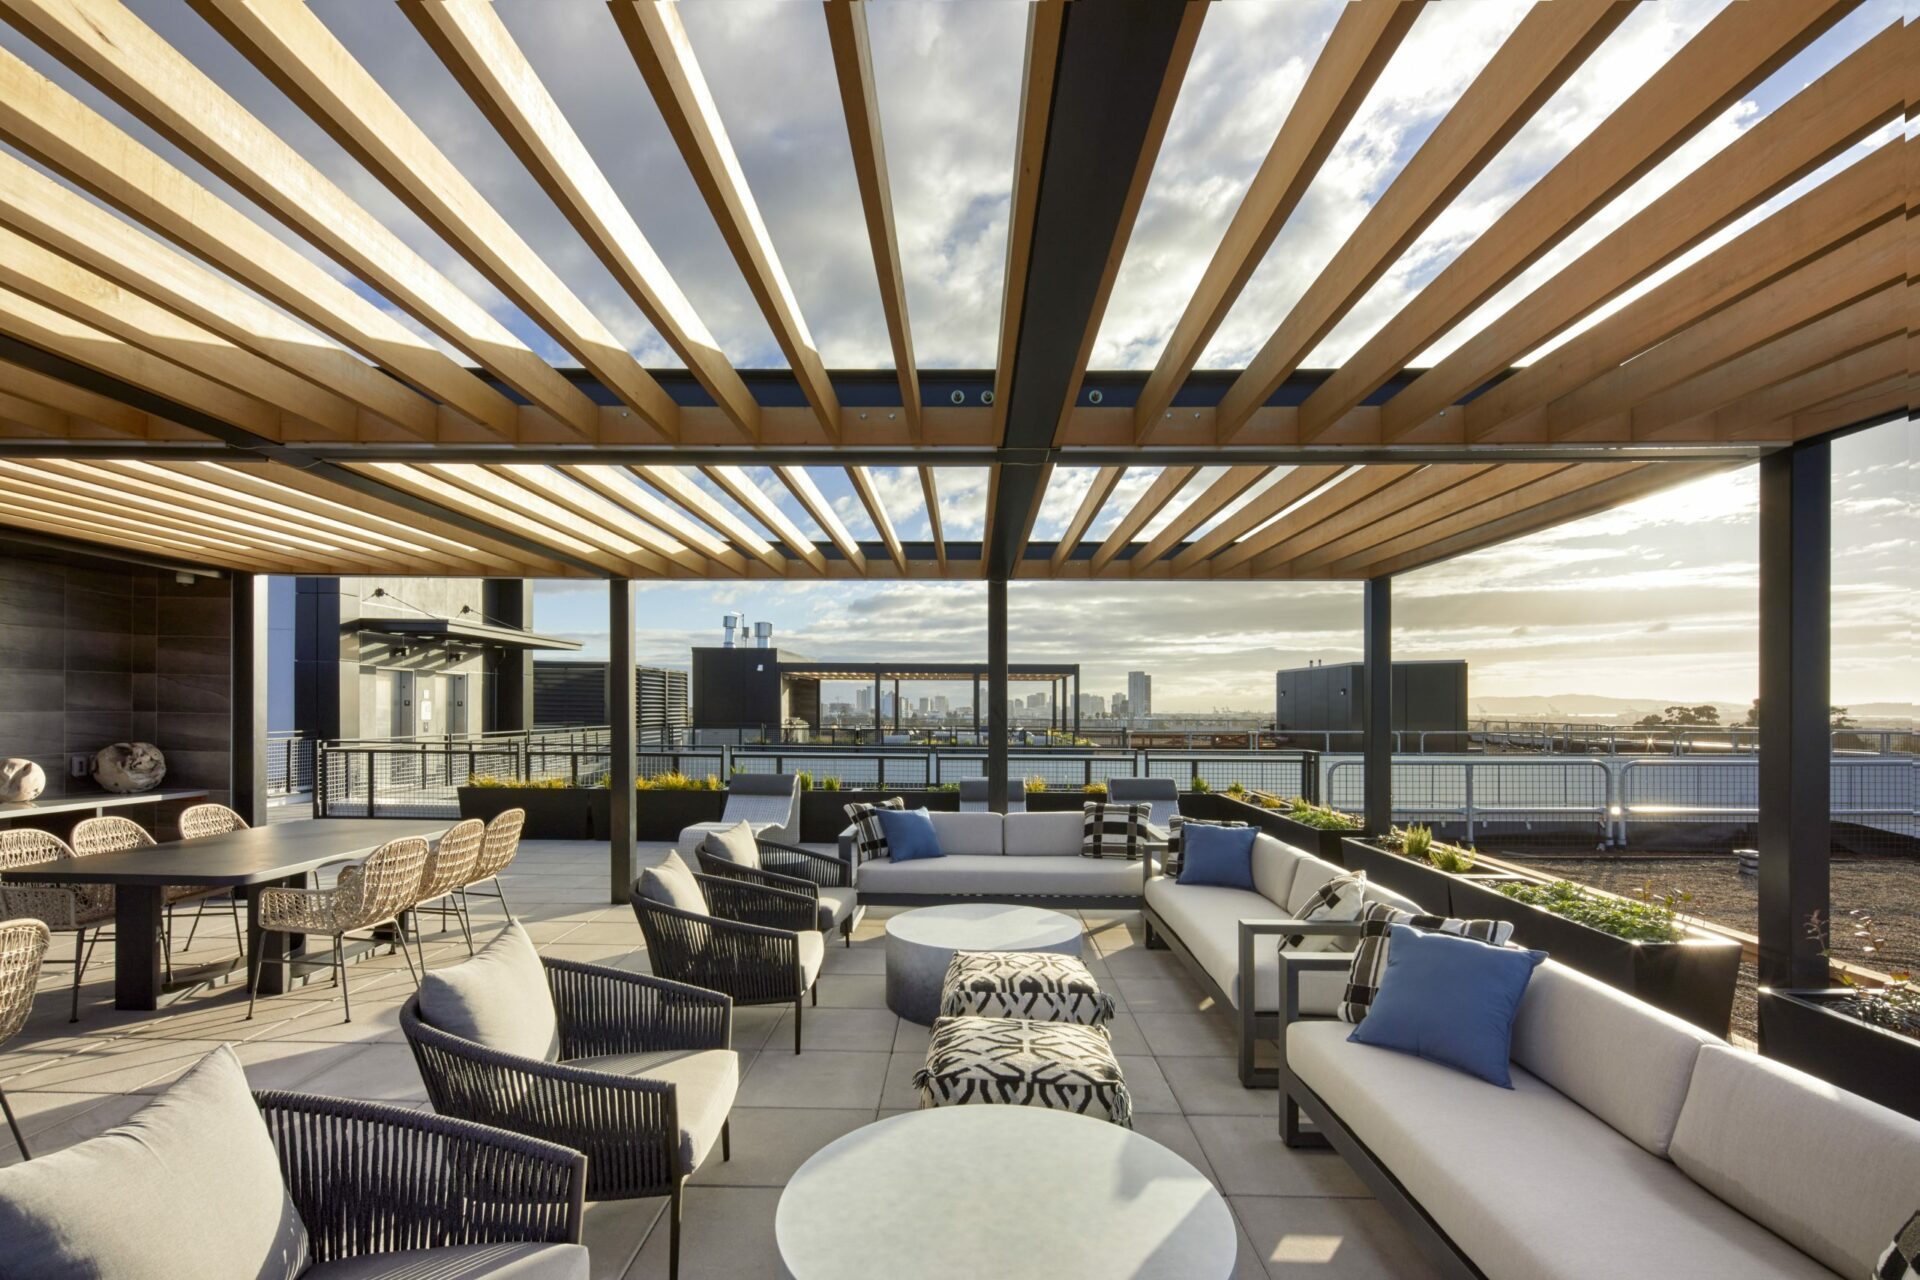 Apartment Rooftop Deck